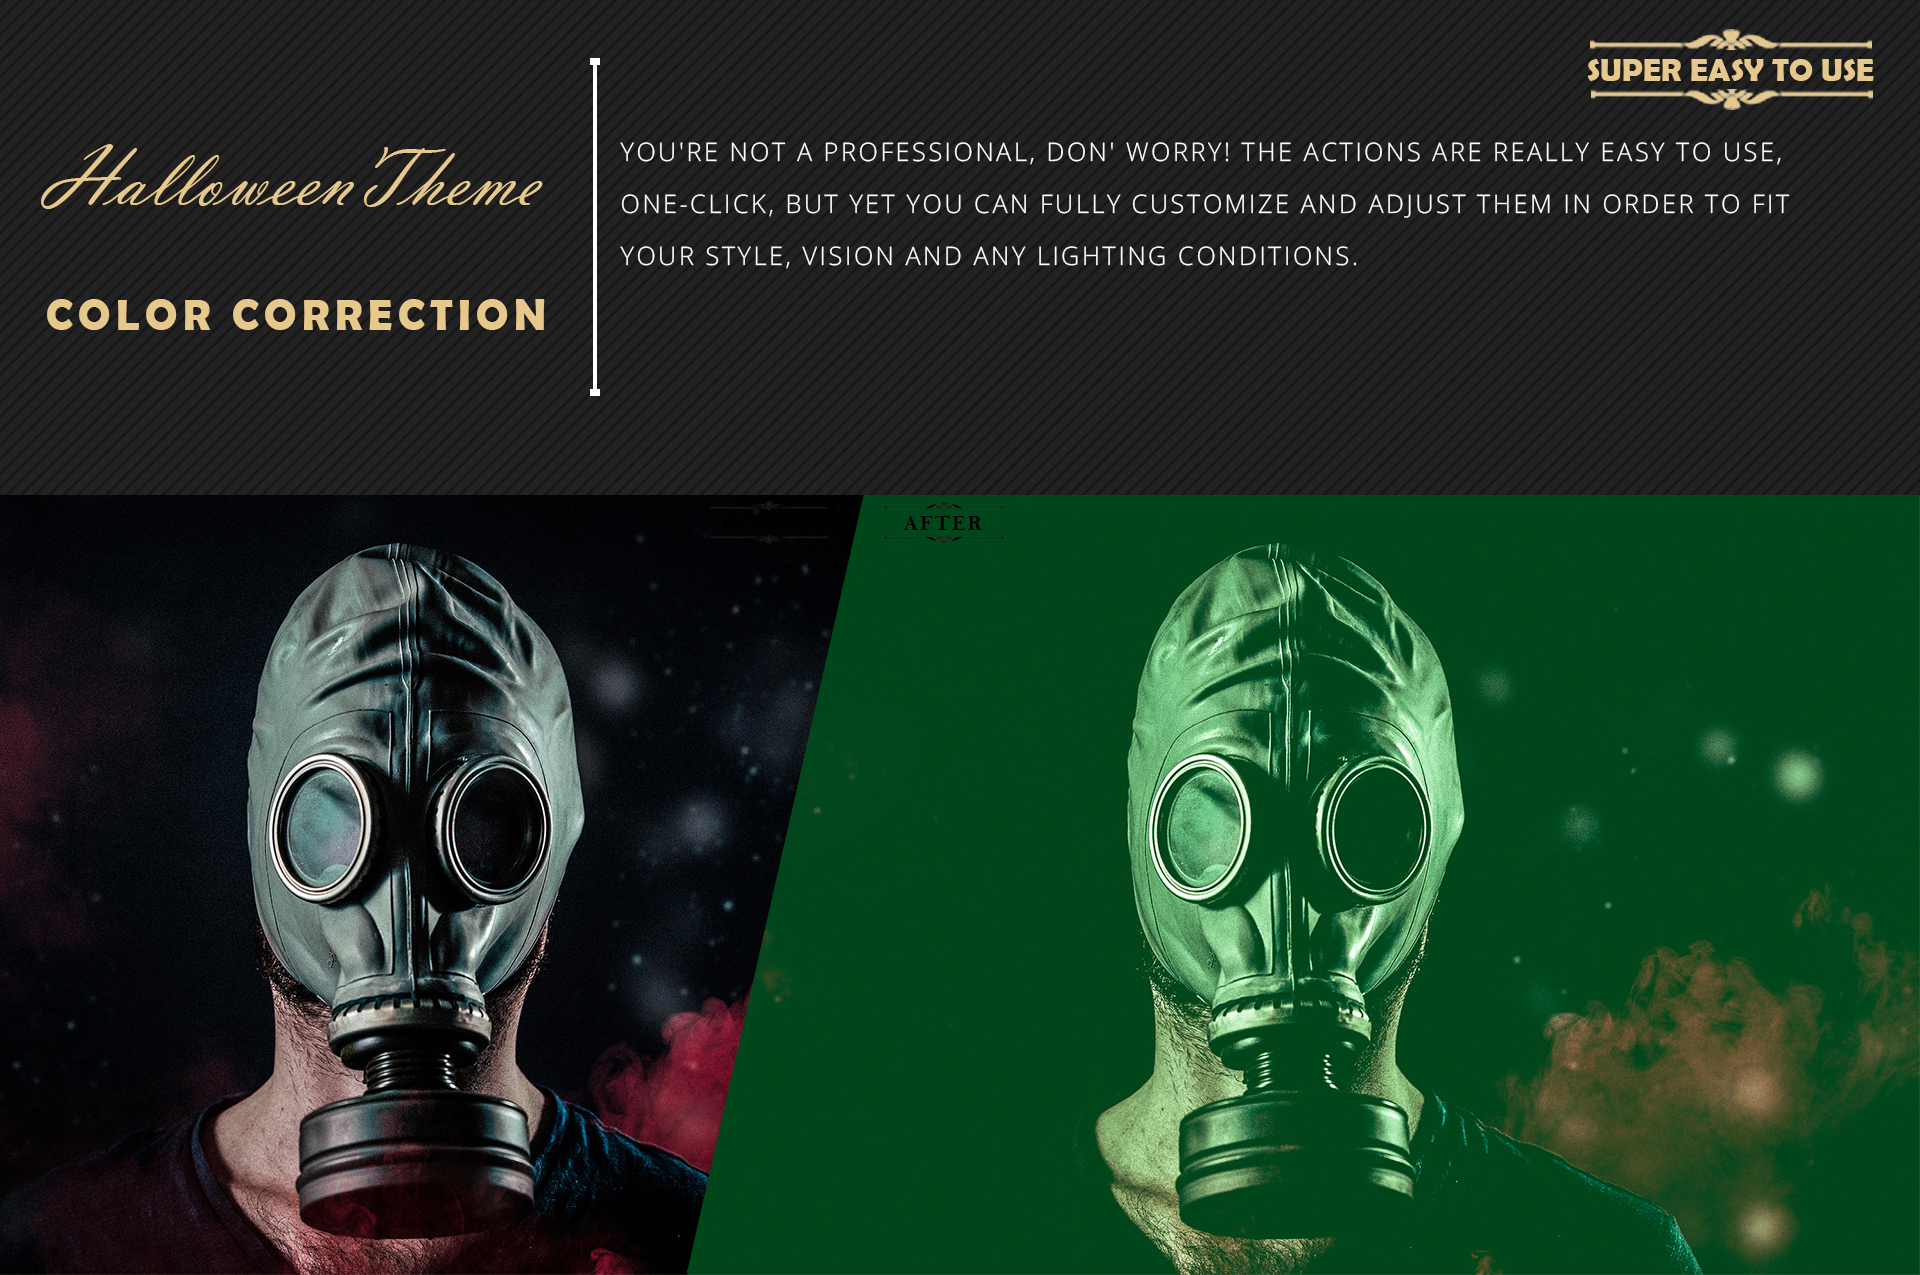 Halloween Theme color grading Photoshop Actions example image 5